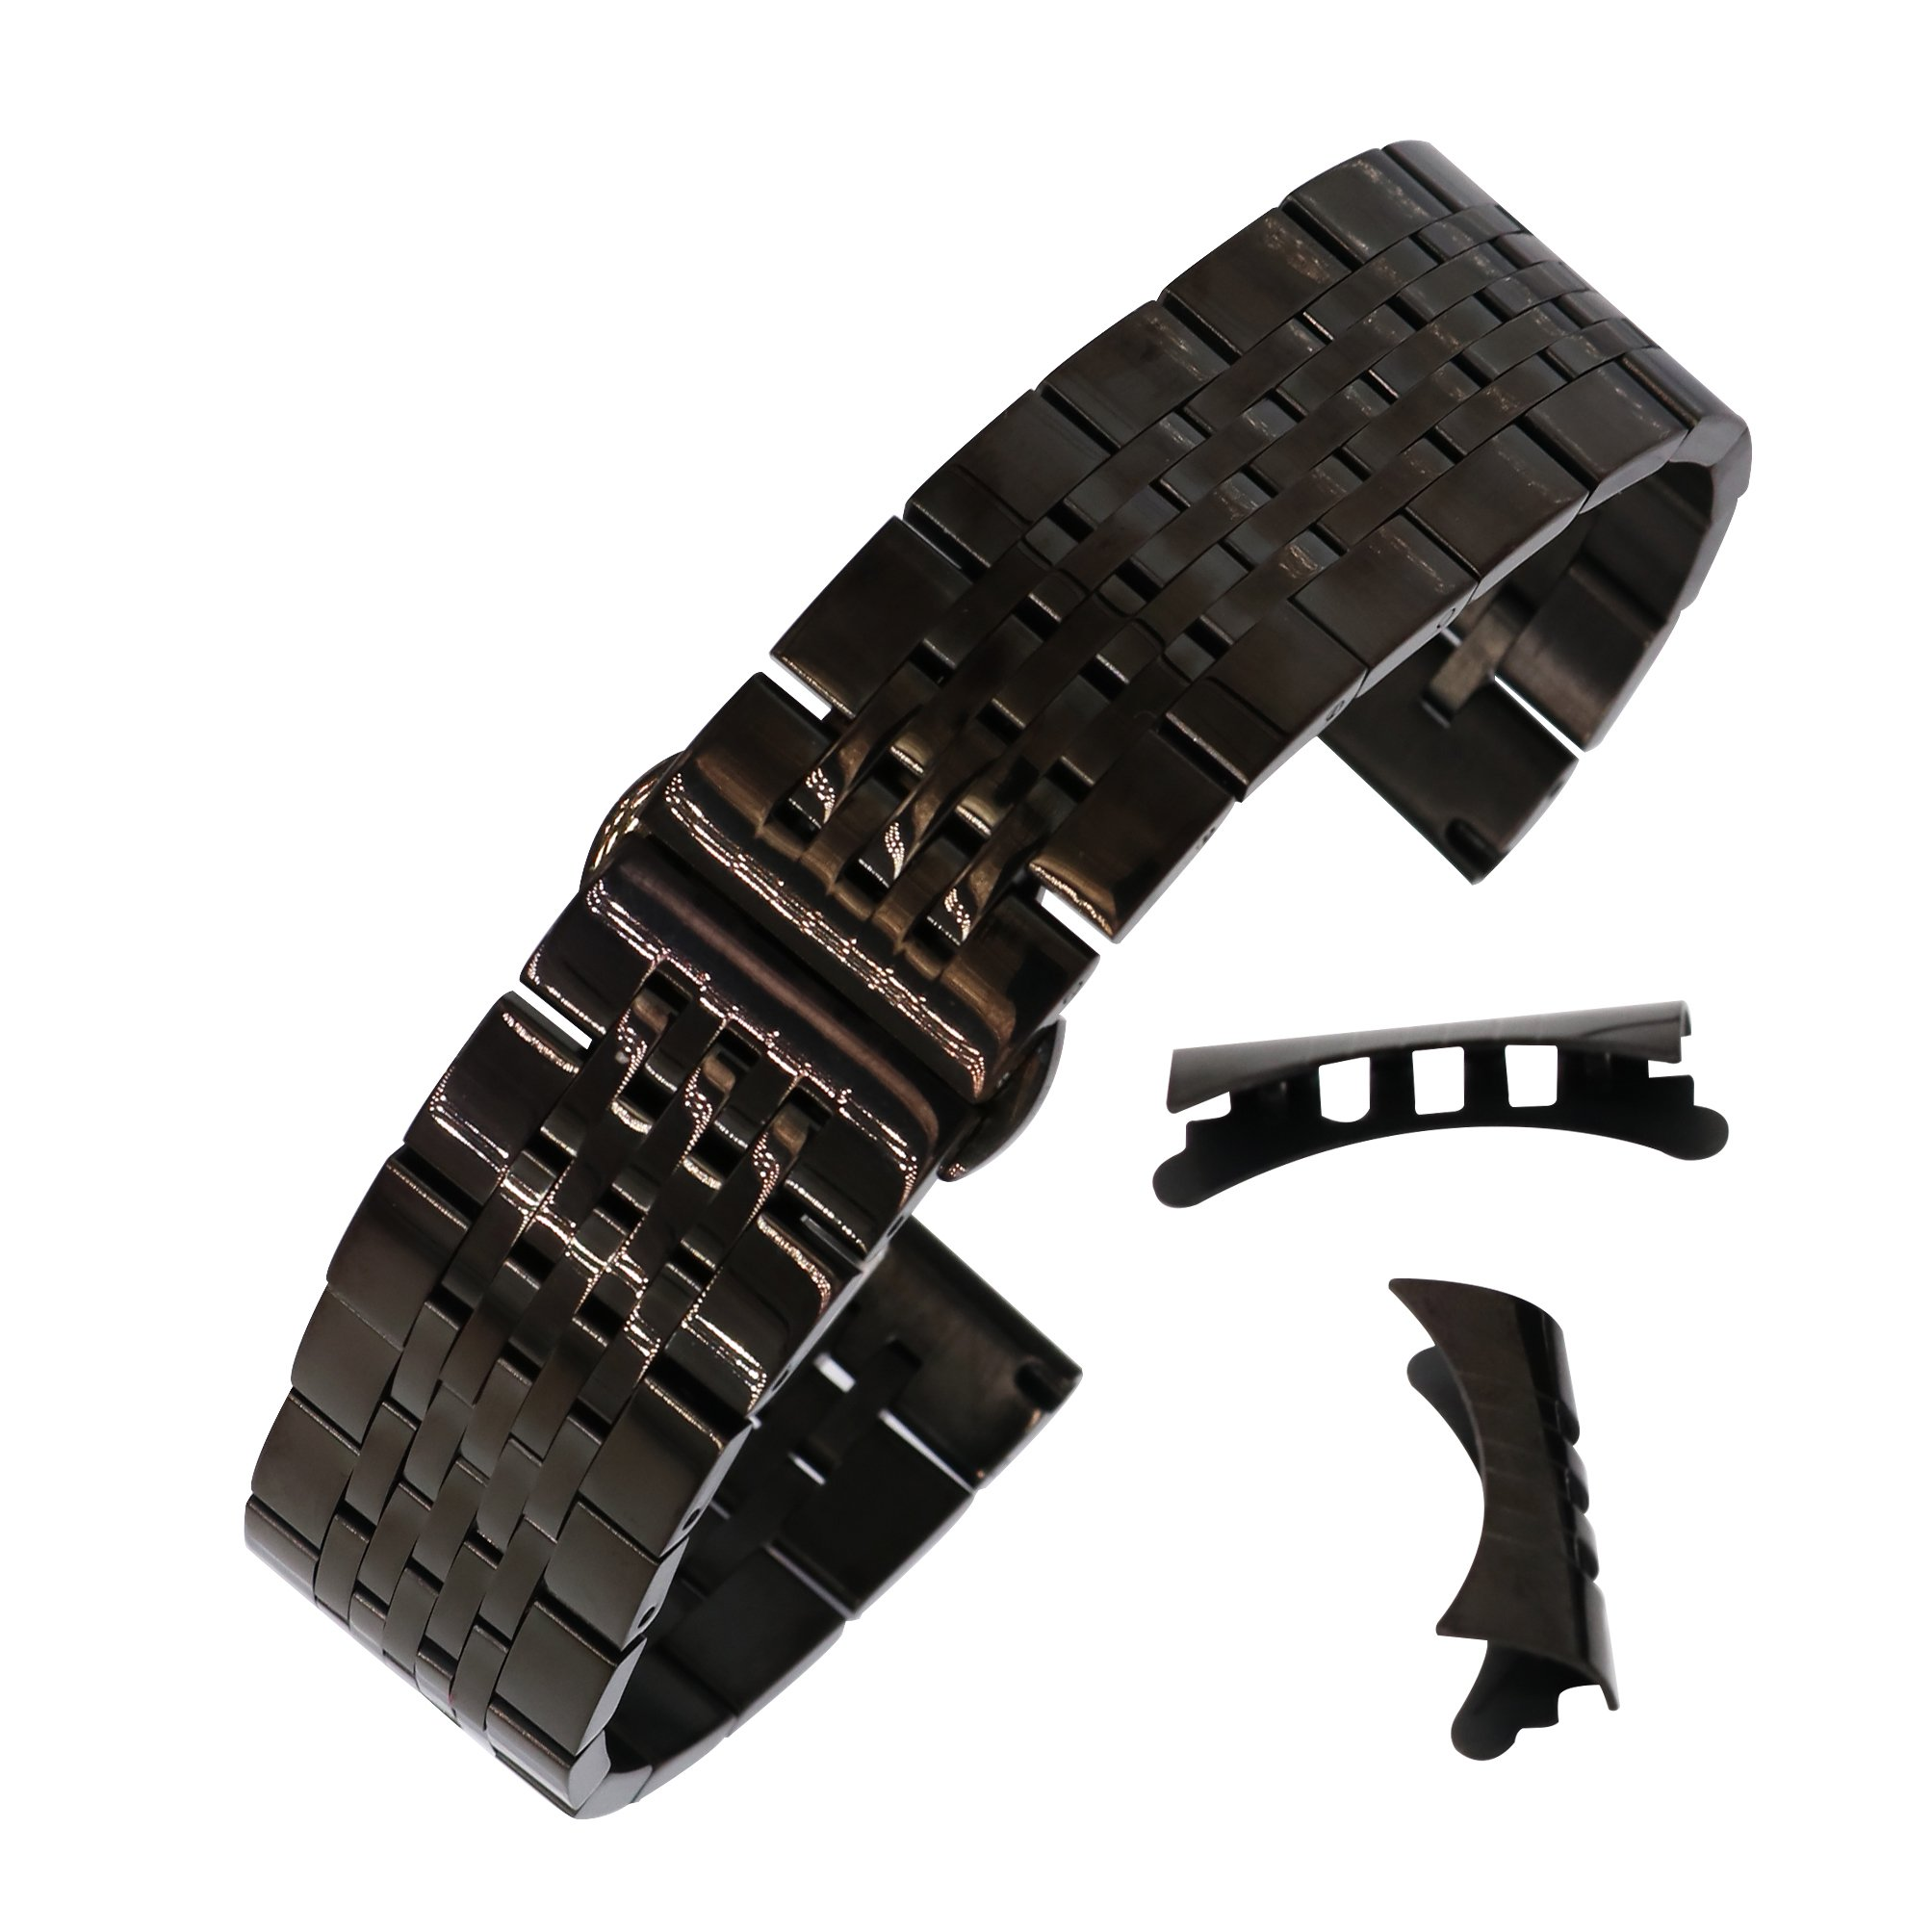 21mm Awesome Solid 304 Inox Steel Wristband for Men's Watch Polished Black Metal Watch Strap Bent End